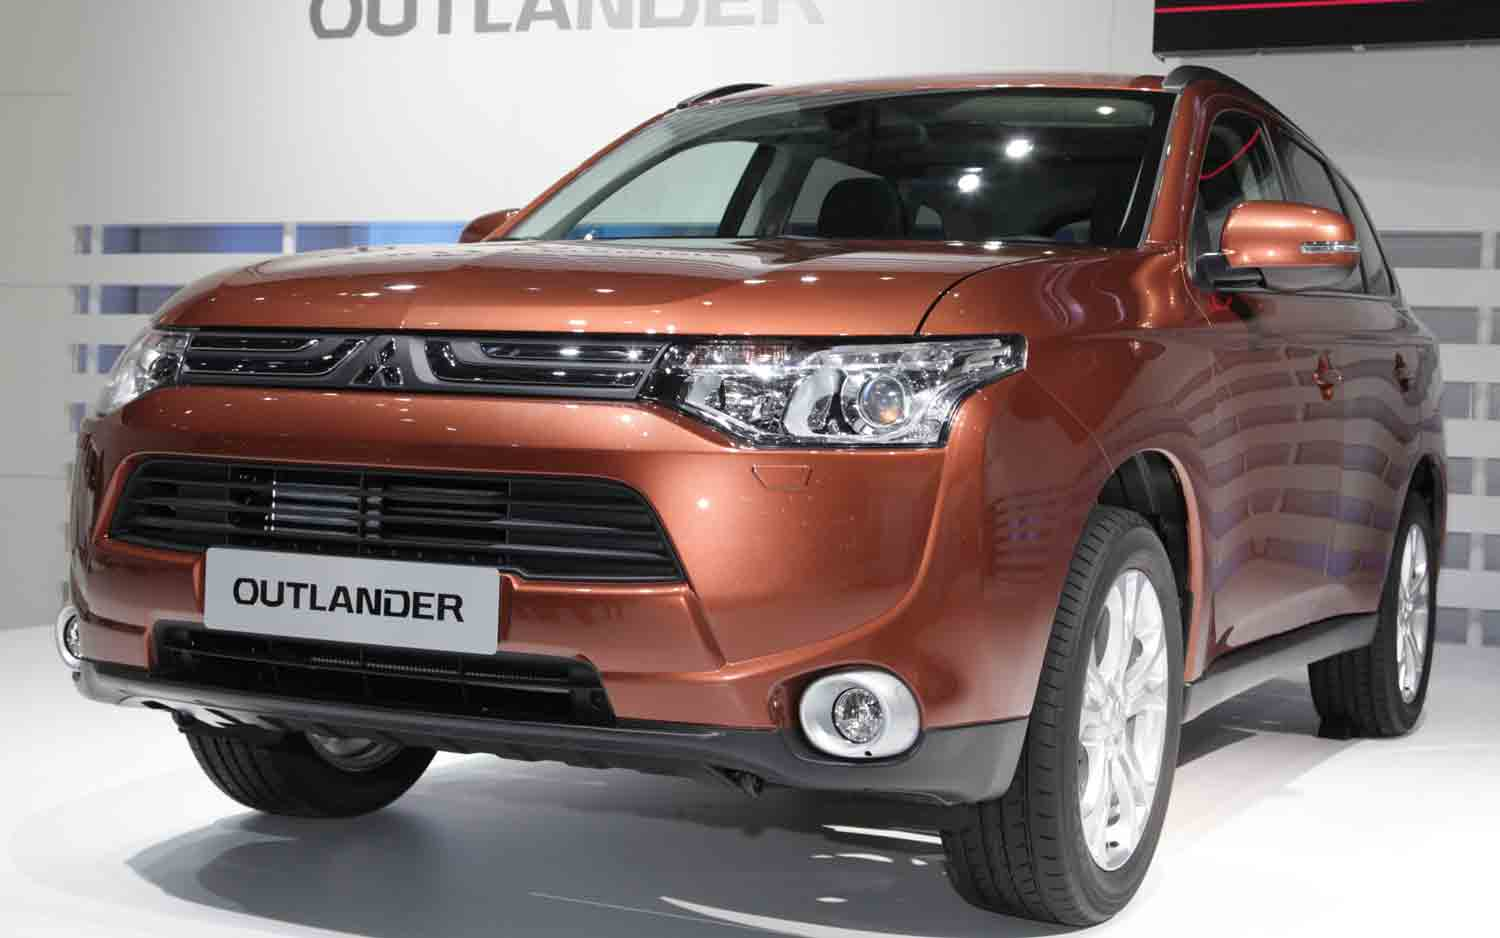 2013 Mitsubishi Outlander Front Three Quarters View1